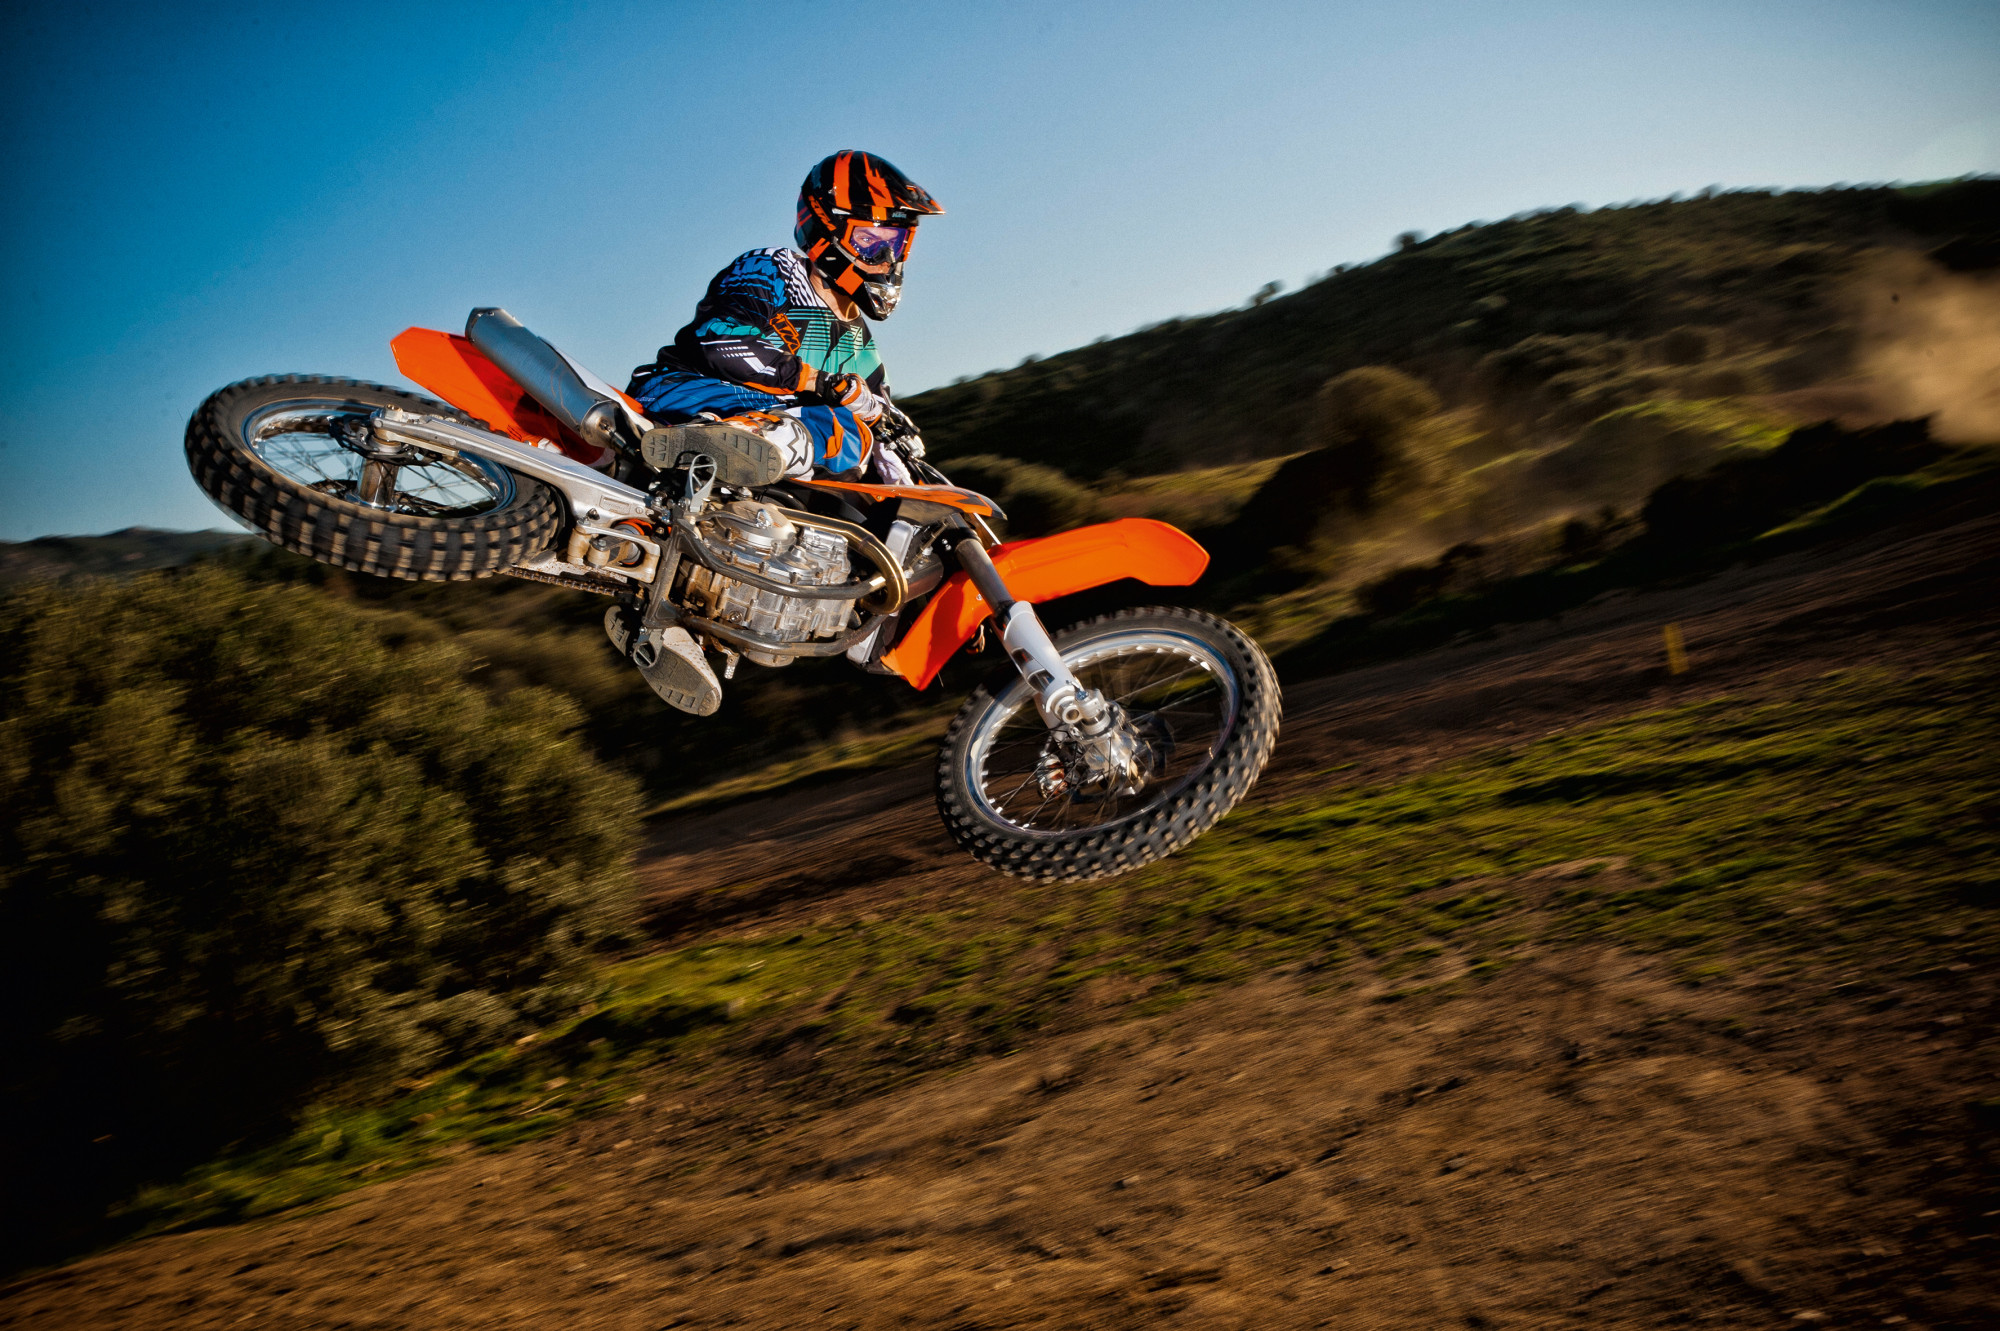 10 New Ktm Dirt Bike Wallpapers Full Hd 1080p For Pc: Dirtbike Wallpaper (67+ Images